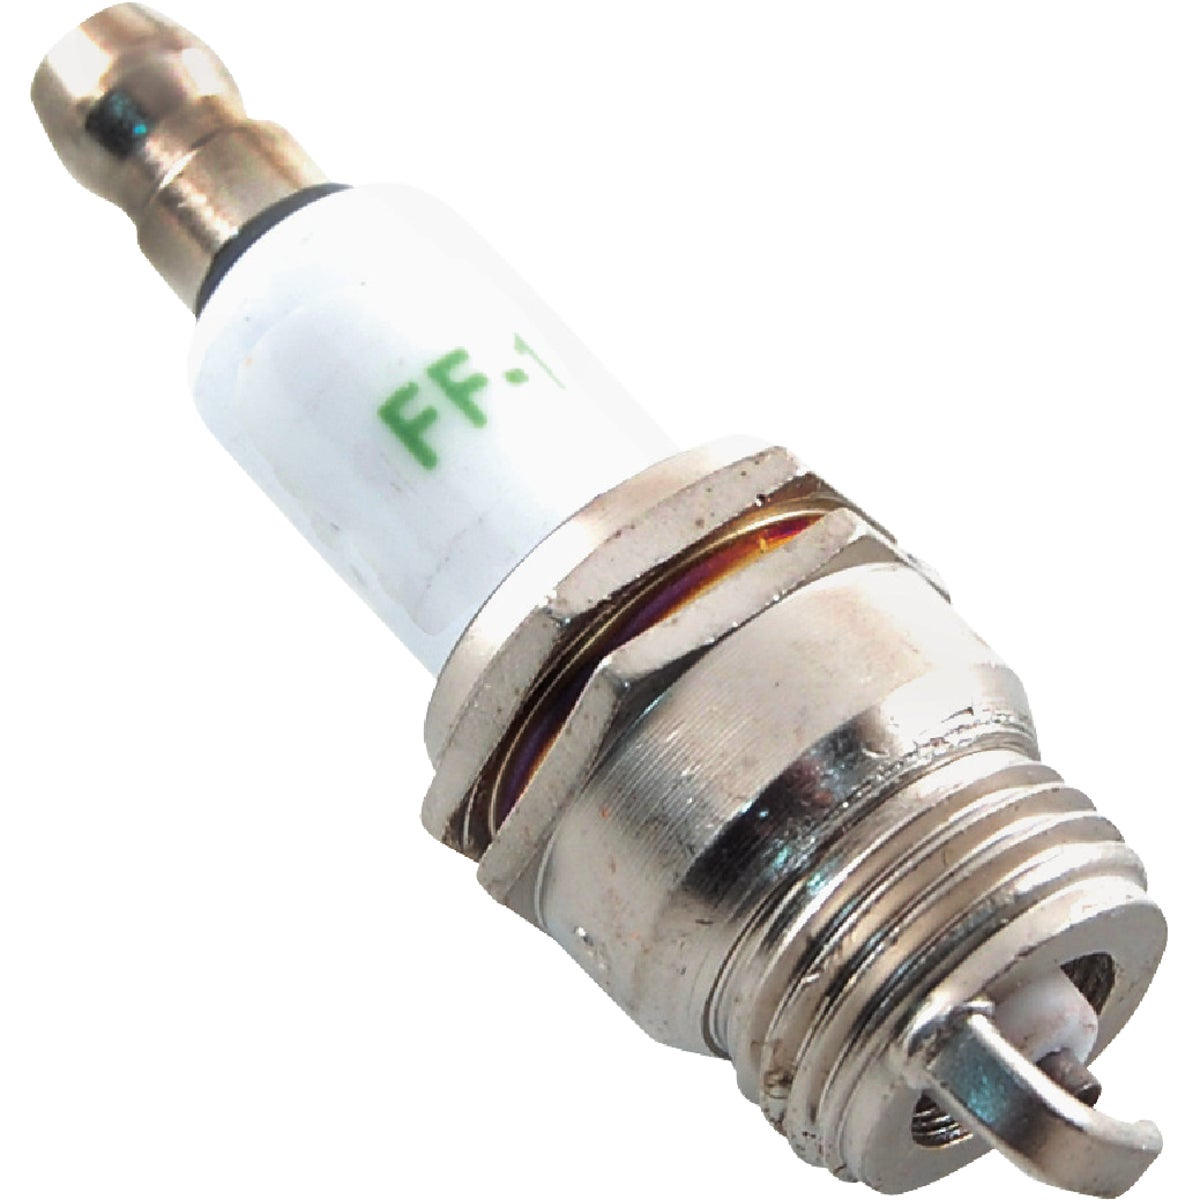 14MM SPARK PLUG - FF-15 by Arnold Corp